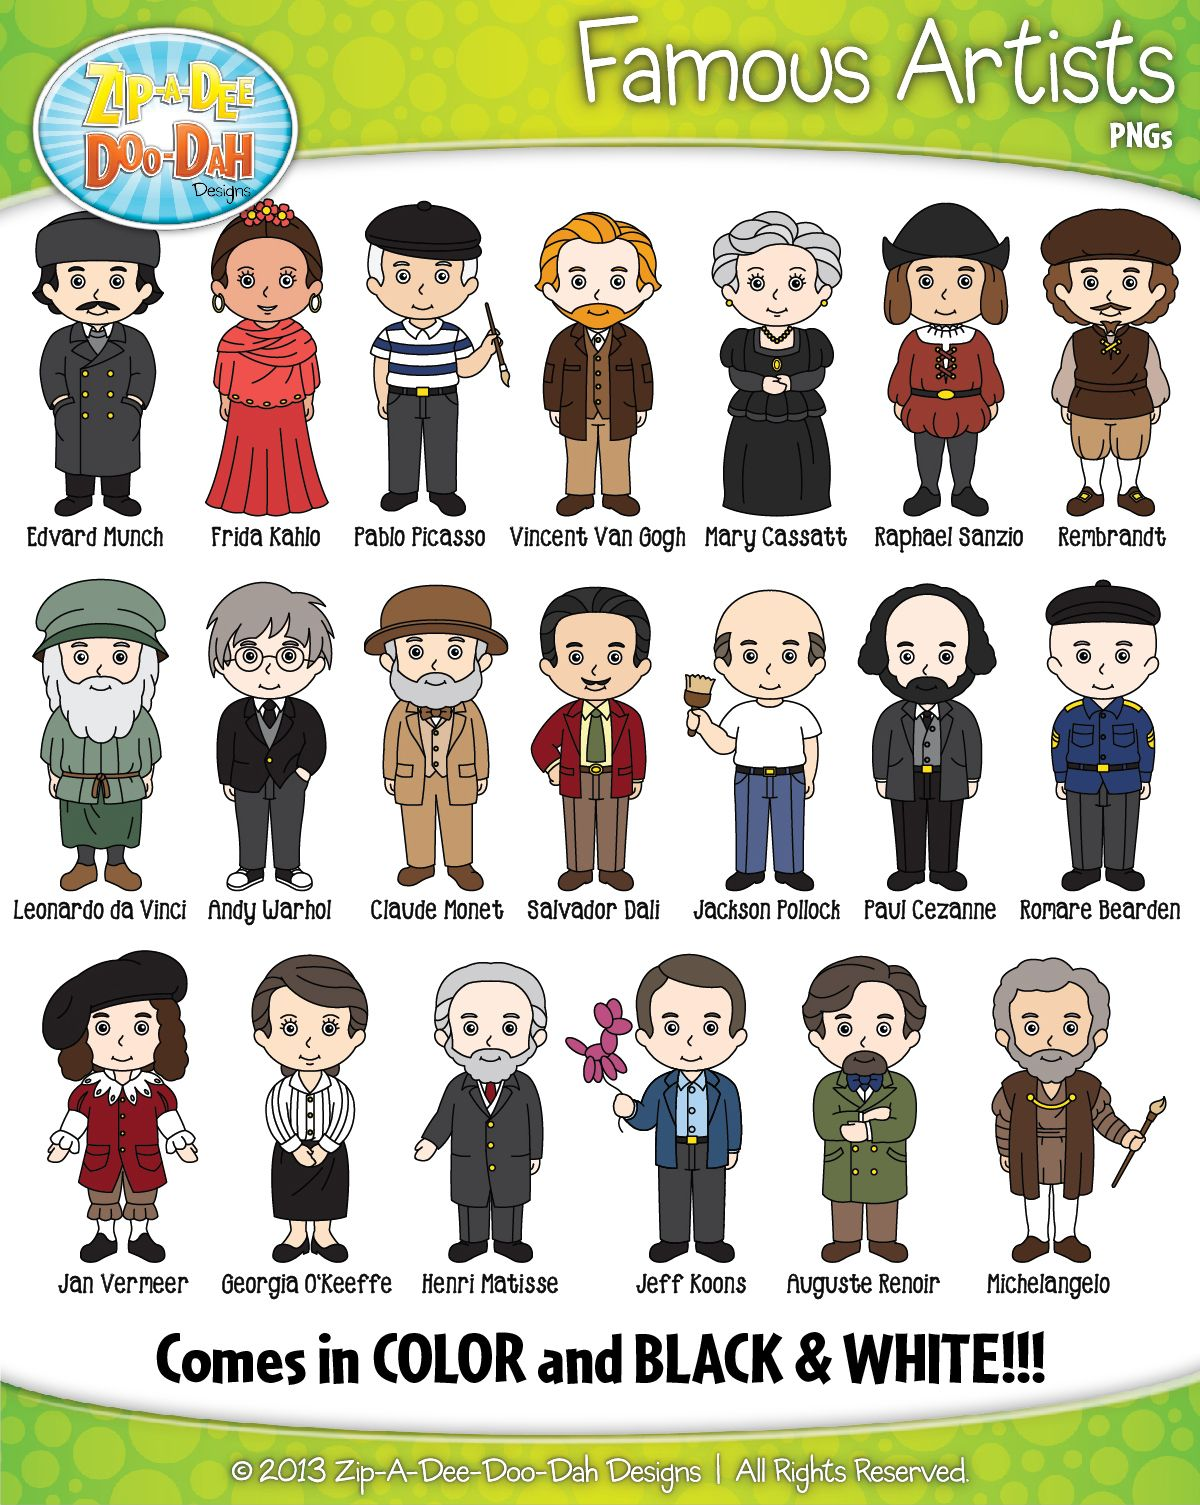 Peanuts clipart pack. Famous artist characters zip